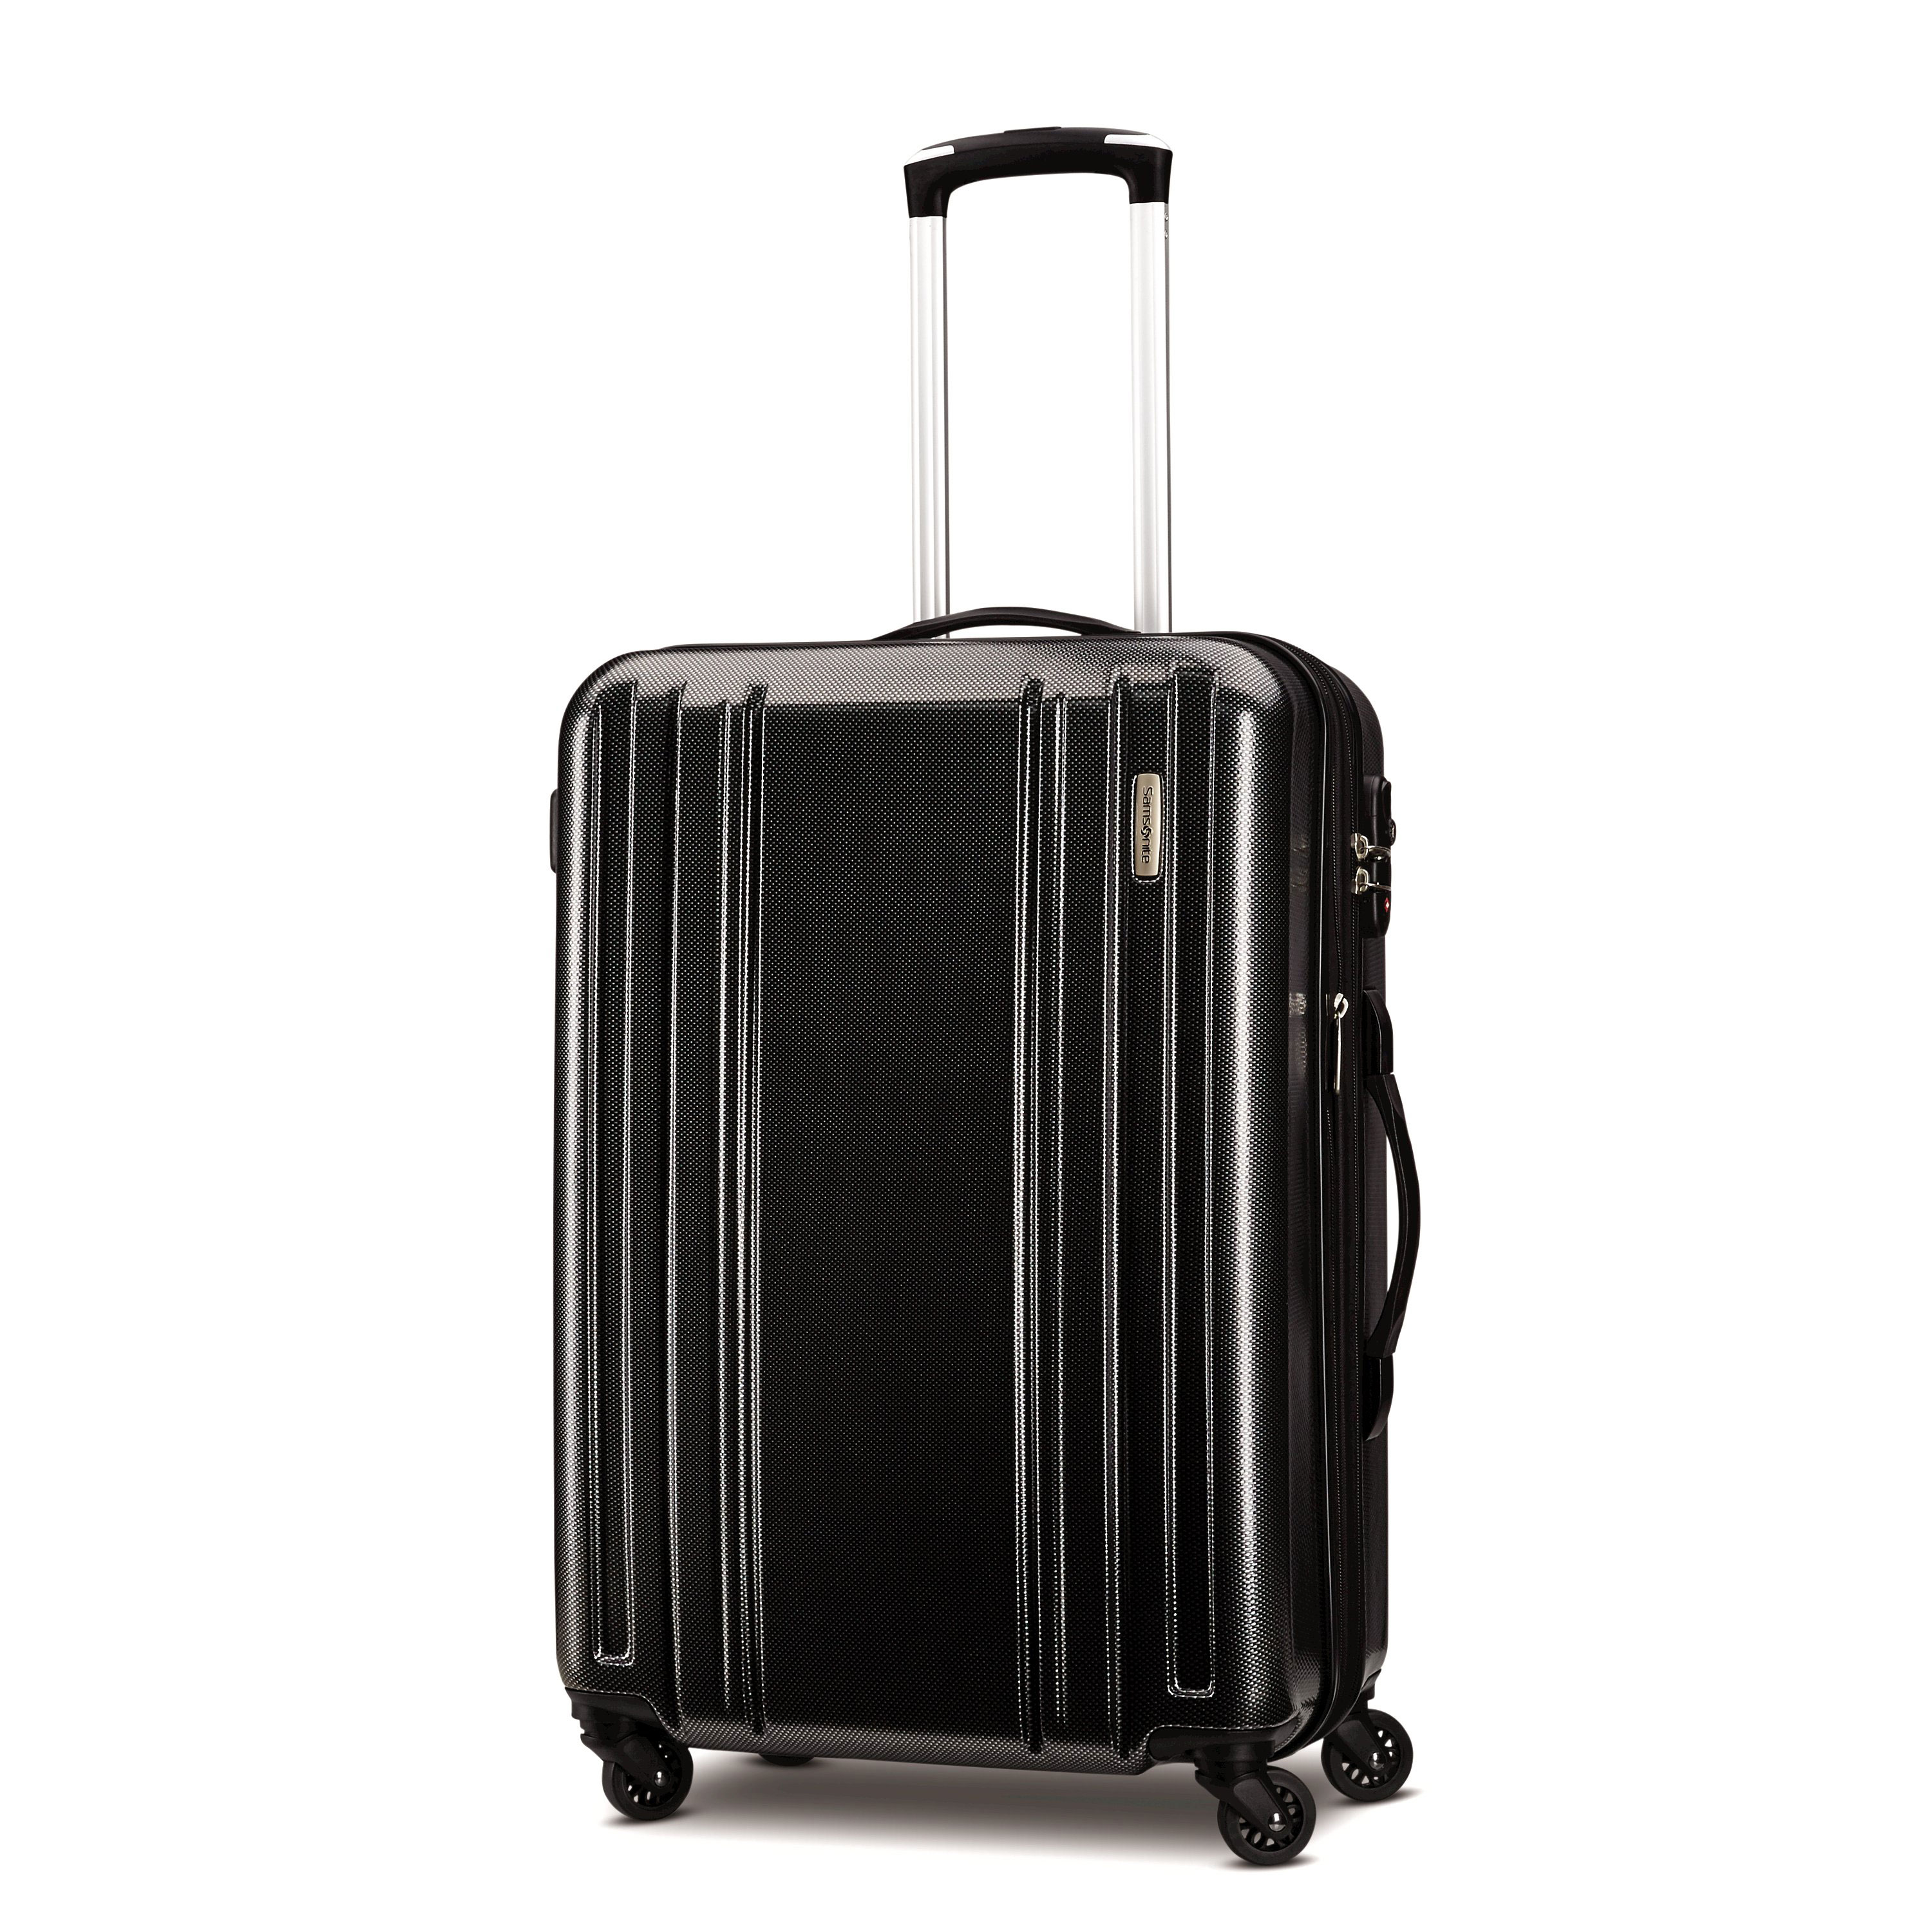 "Keep your travel essentials stylishly stowed in the Samsonite Carbon 2 spinners. This ABS/polycarbonate hardside collection features a textured shell to discourage scratches and scuffs and was designed to absorb impact when under stress, then pop back to its original shape, eliminating dents and dings. Each has a spacious, zippered main compartment with elastic cross-straps for holding contents in place, plus a zippered lid compartment for keeping accessories and toiletries separate. Each case comes with a Mounted Travel Sentry combination lock. Four multi-directional spinner wheels for smooth, upright, 360 degree rolling. Weight: 8.15 lbs. Body Dimensions: 24.0"" x 17.0"" x 11.0""Overall Dimensions: 26.0"" x 18.0"" x 11.0"""